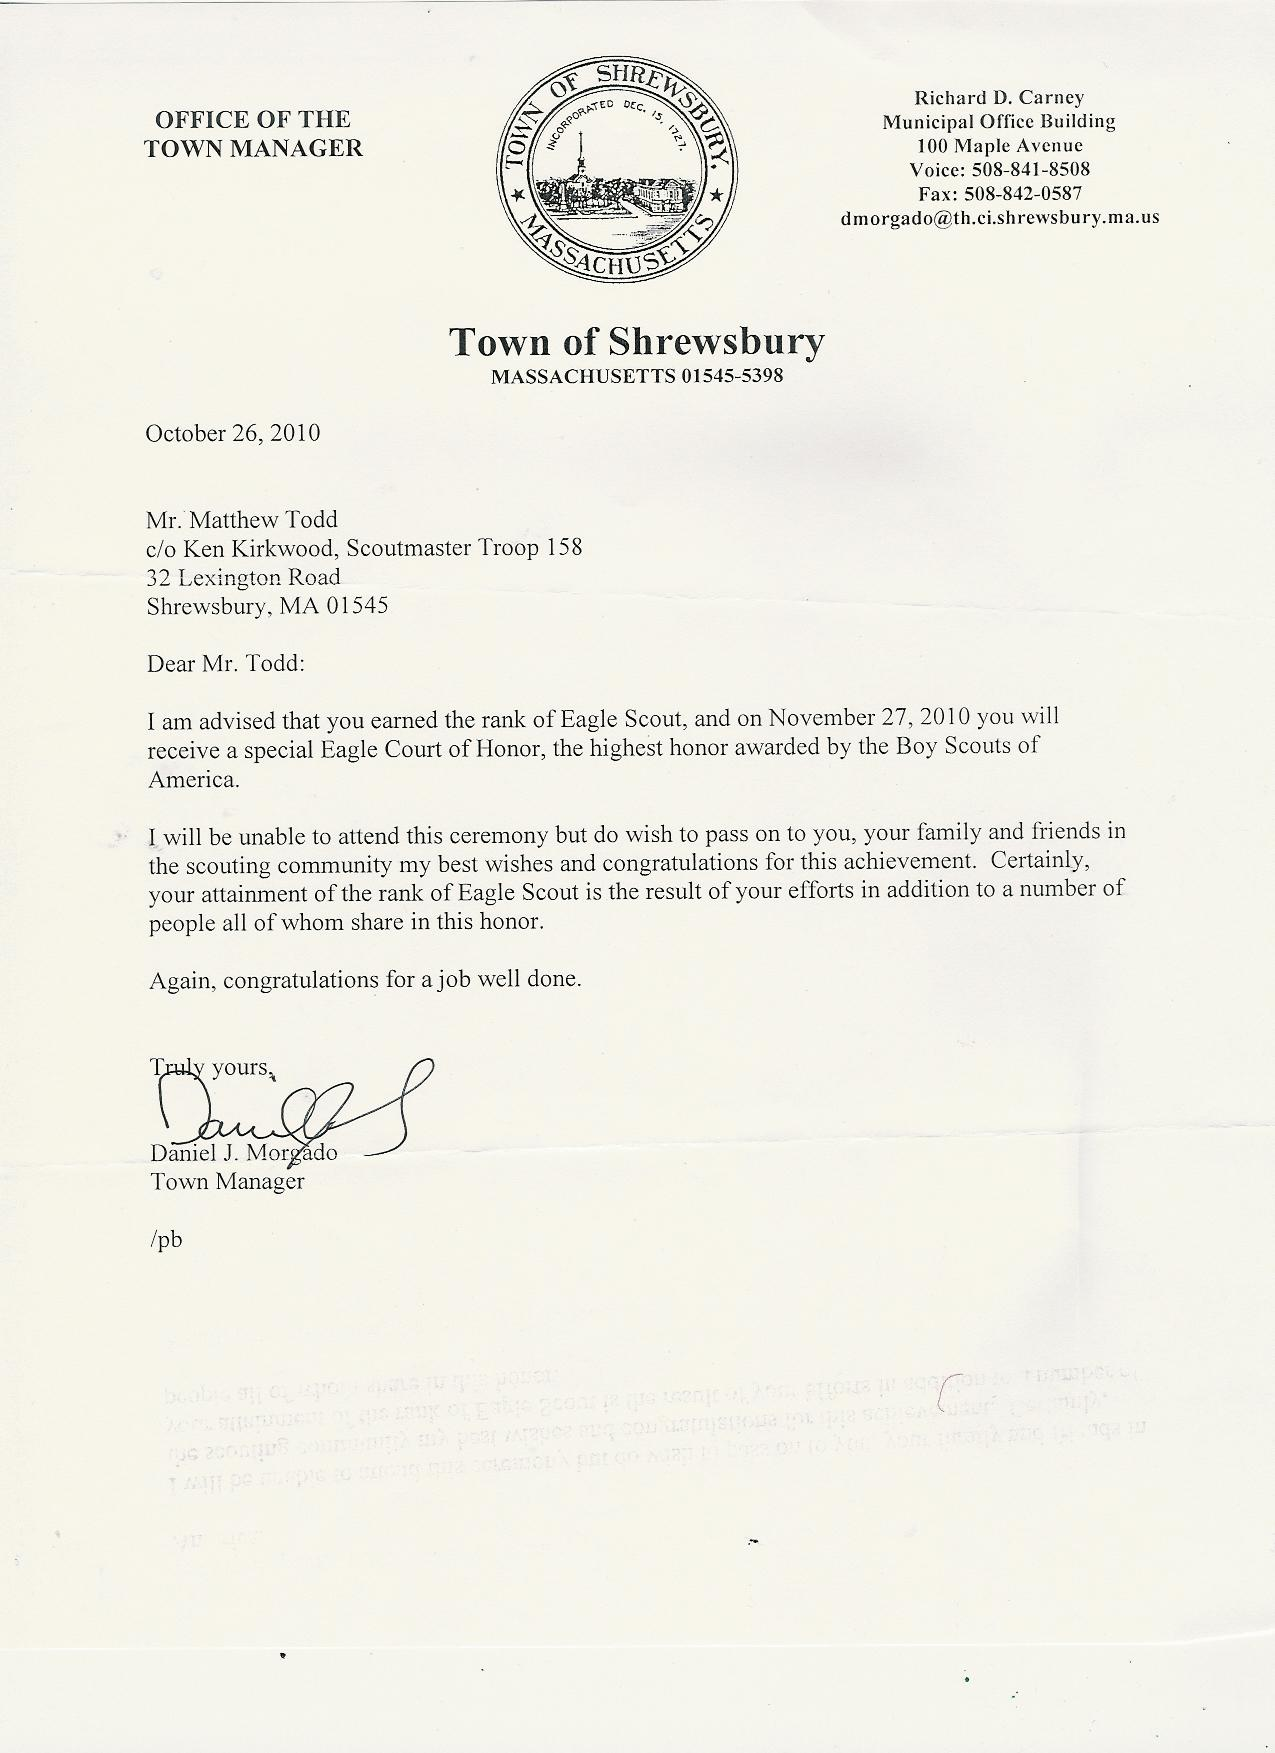 Information playground matthews eagle application and commendations a letter from shrewsbury town manager dan morgado spiritdancerdesigns Choice Image